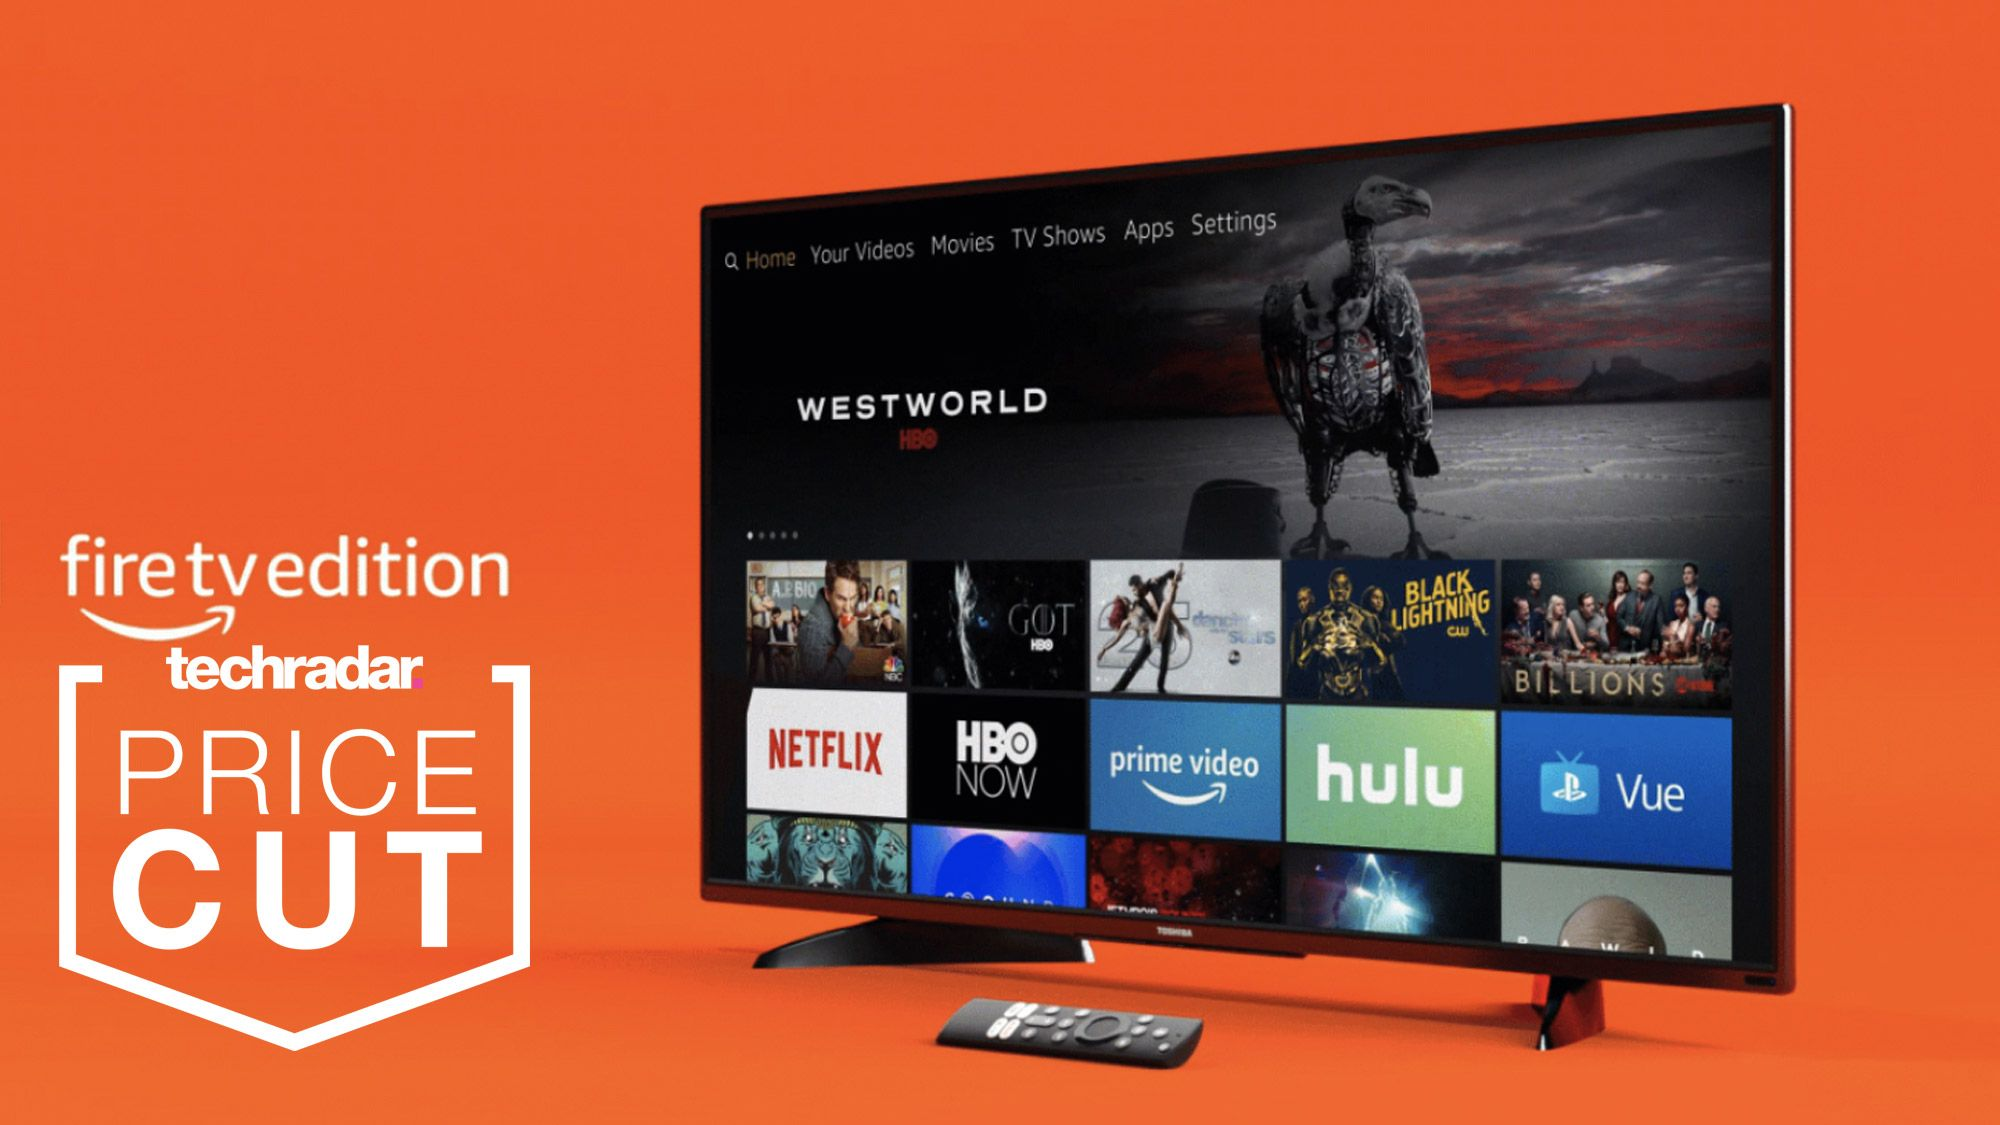 Cheap 4k Tv Deal Amazon Has This 50 Inch Fire Tv On Sale For Just 299 99 In 2020 Tv Deals Tv Sales Fire Tv